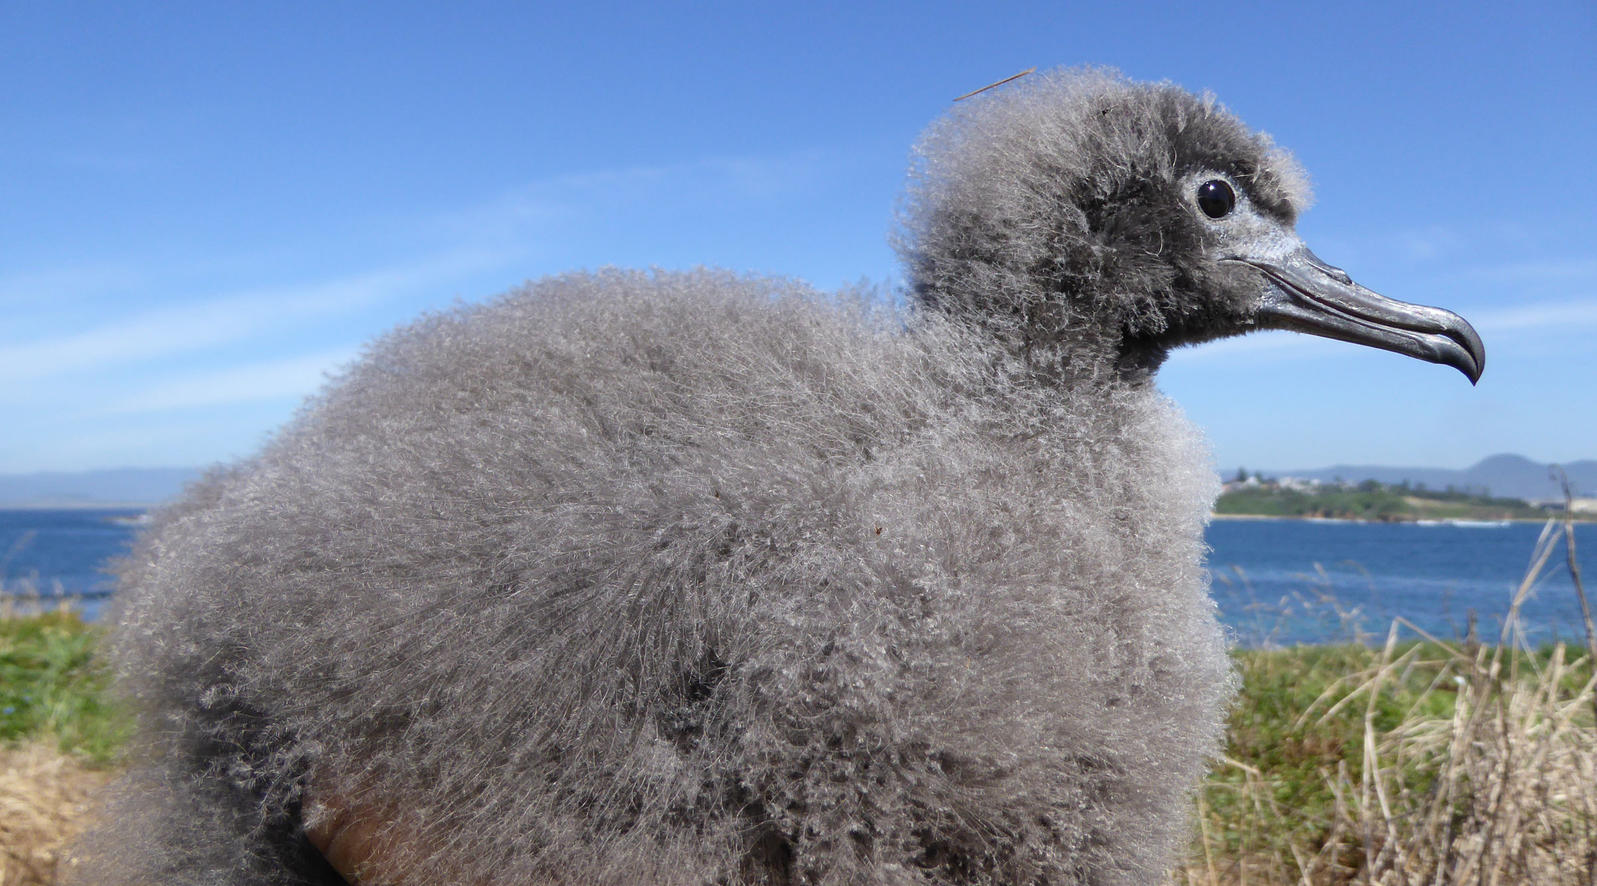 Wedge-tailed Shearwater chick. Rowena Morris